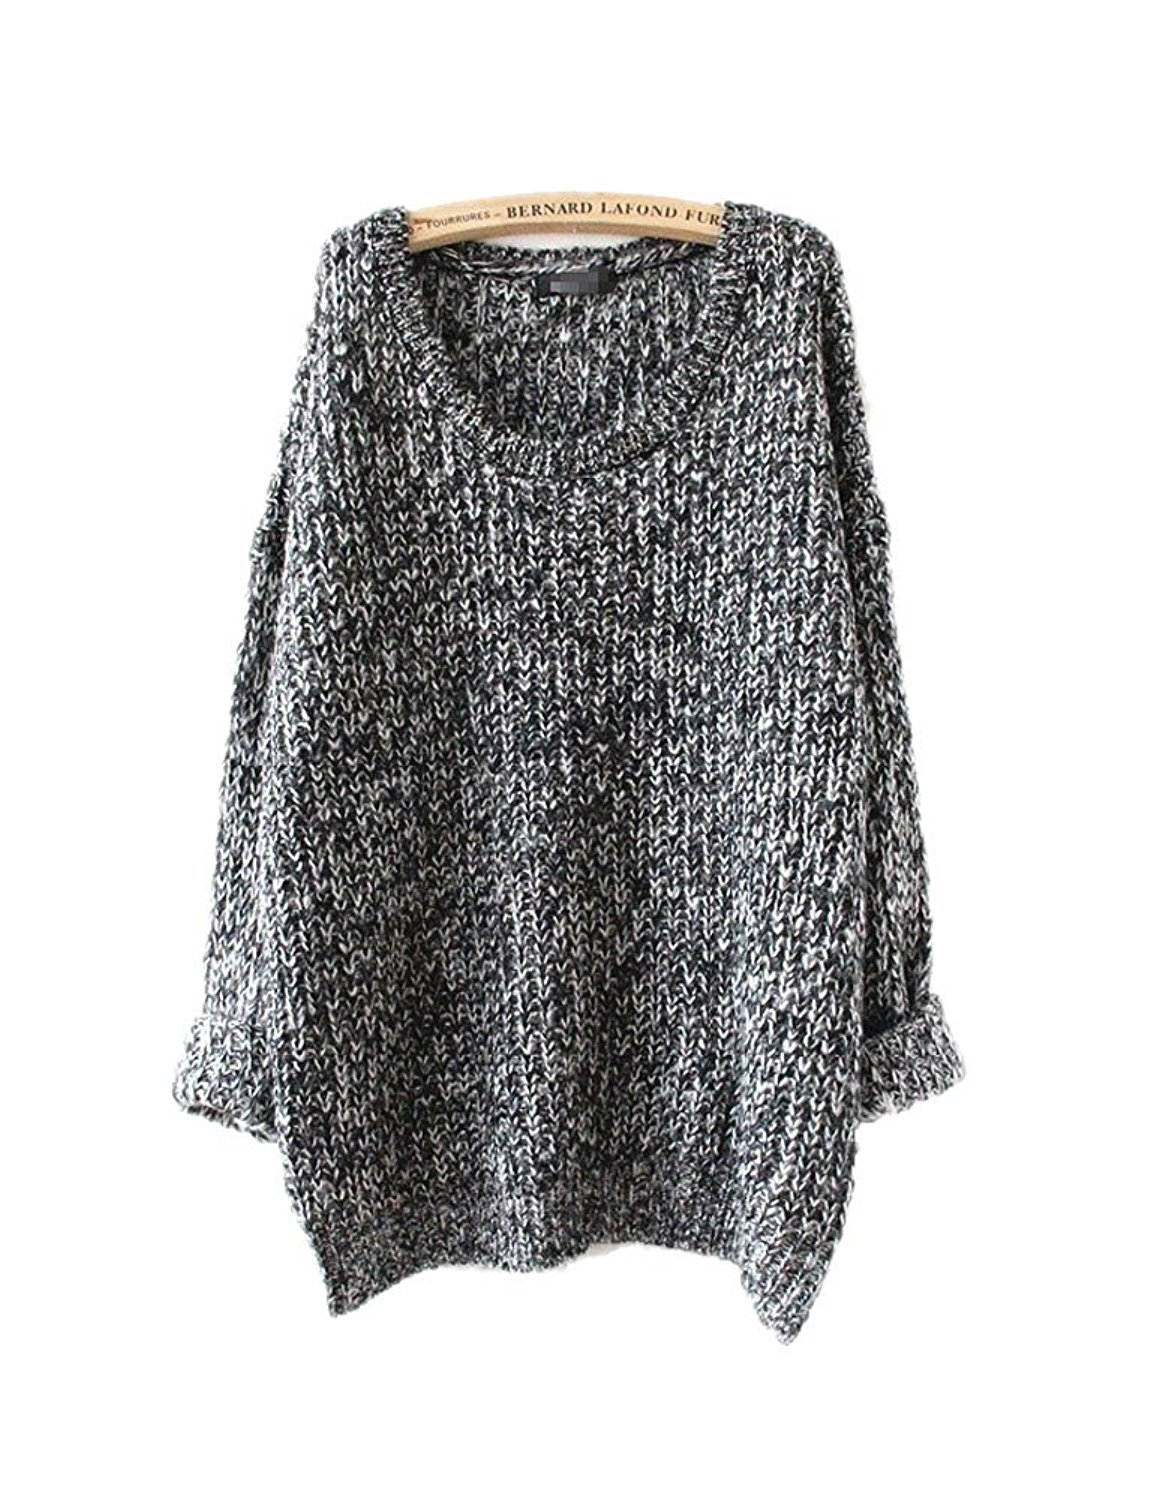 ARJOSA Women's Fashion Oversized Knitted Crewneck Casual Pullovers Sweater